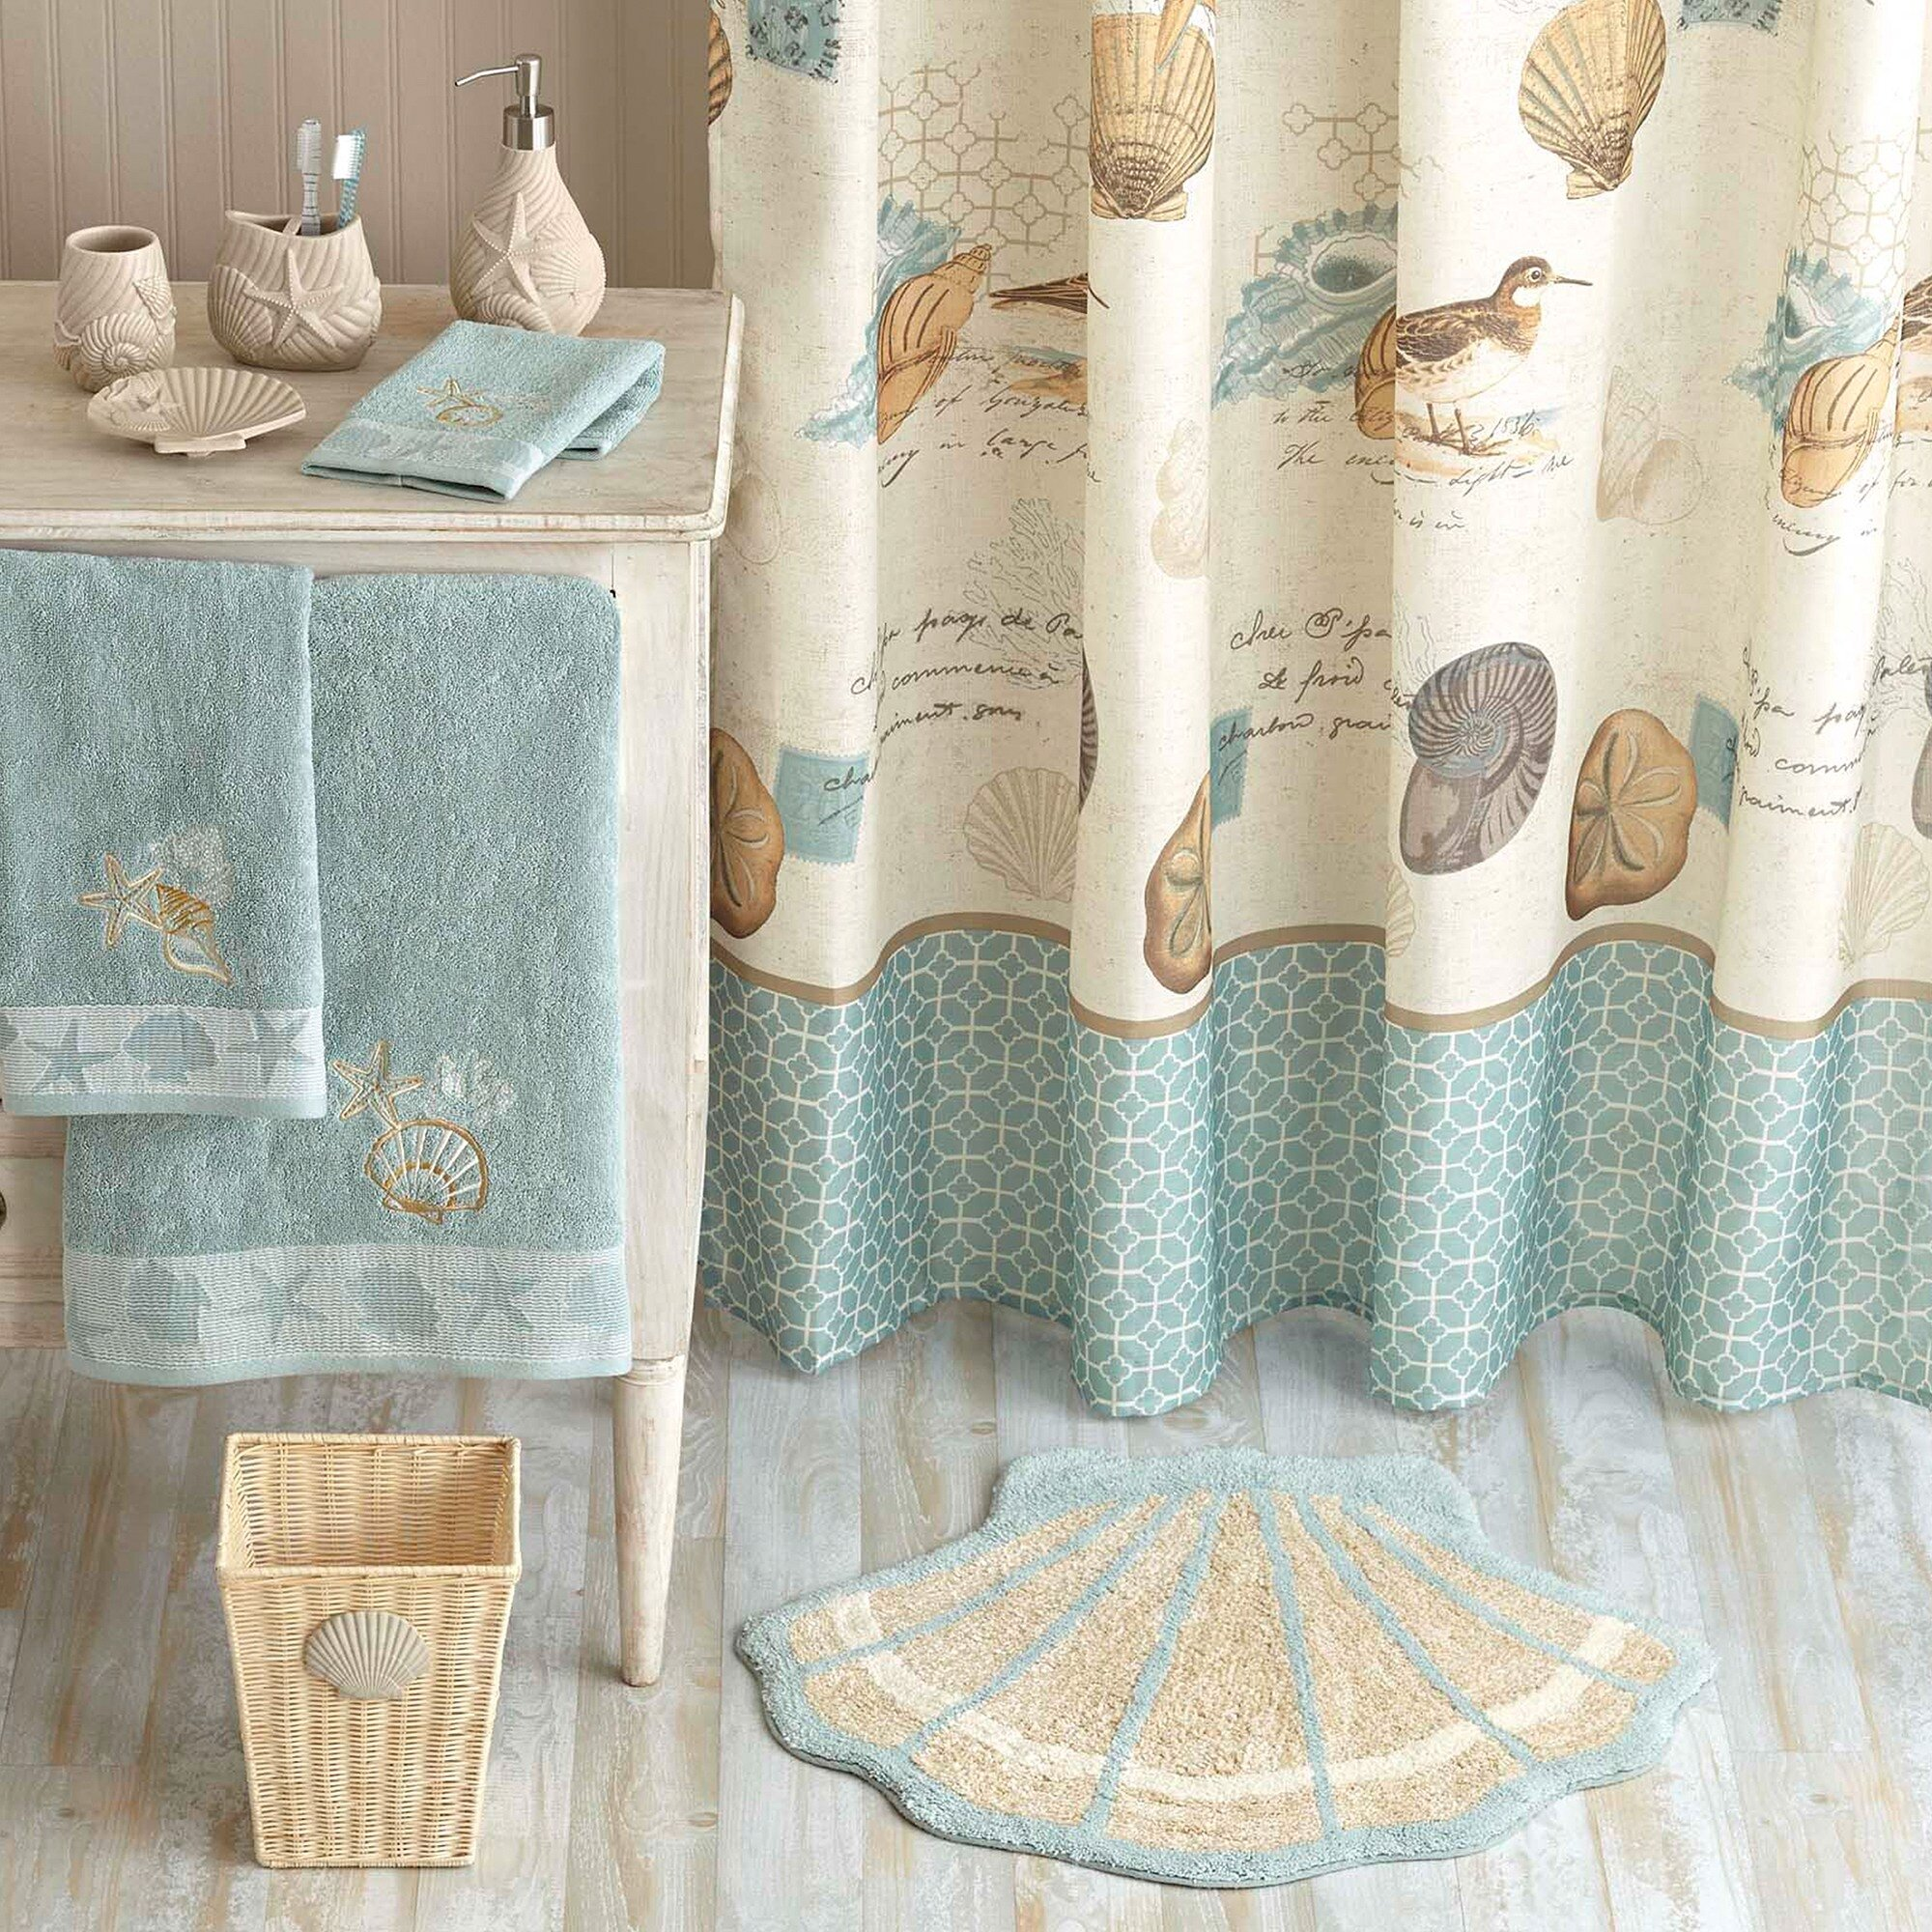 Shower Bathroom Sets: Curtain: Walmart Shower Curtain For Cute Your Bathroom